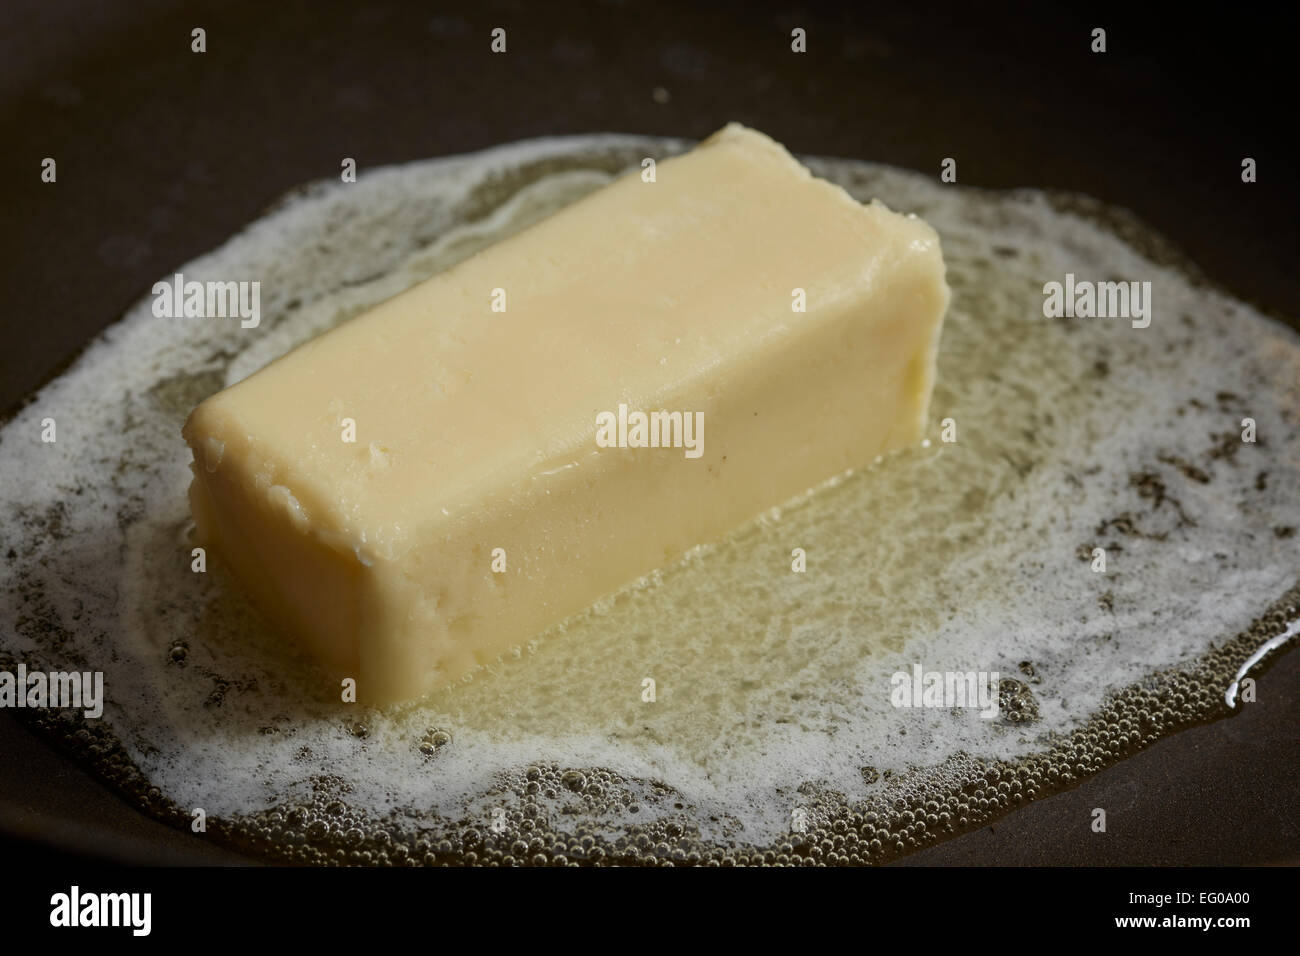 Butter melting in a frying pan - Stock Image